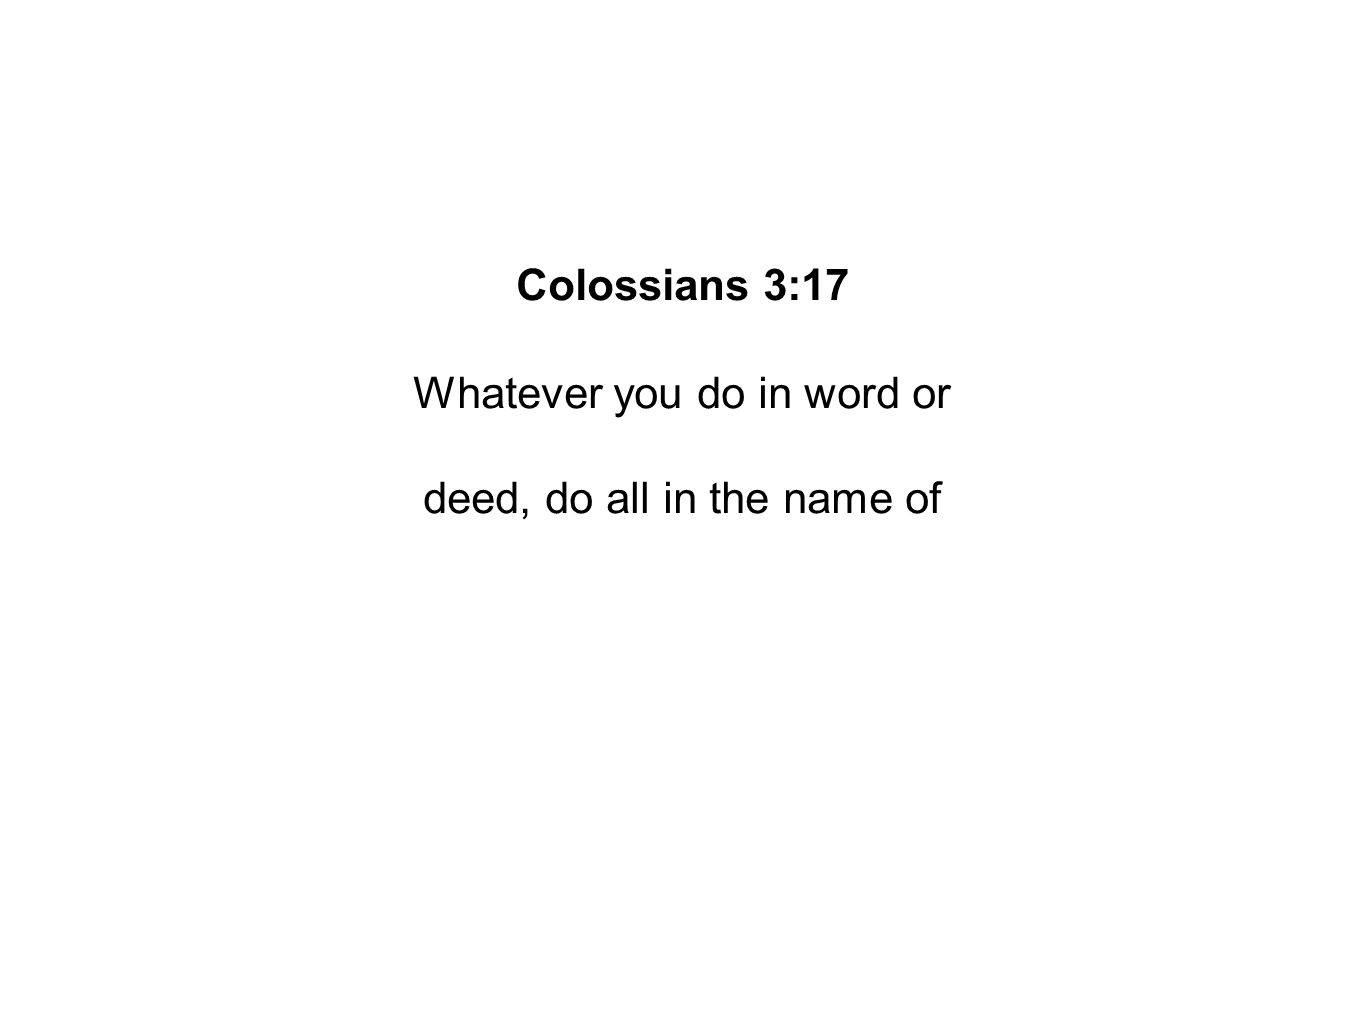 Colossians 3:17 Whatever you do in word or deed, do all in the name of